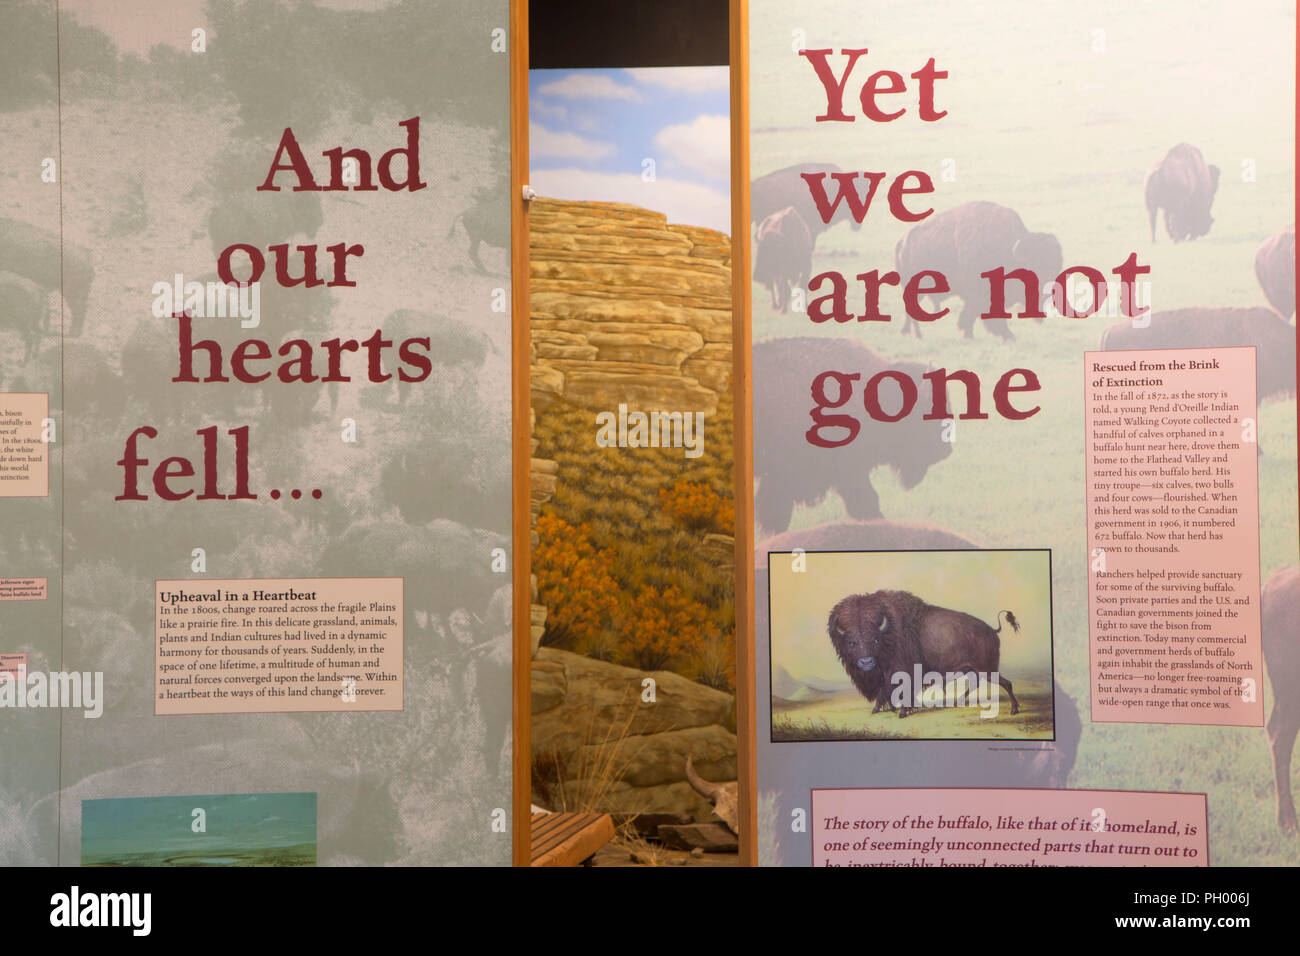 Visitor center display, First Peoples Buffalo Jump State Park, Montana - Stock Image